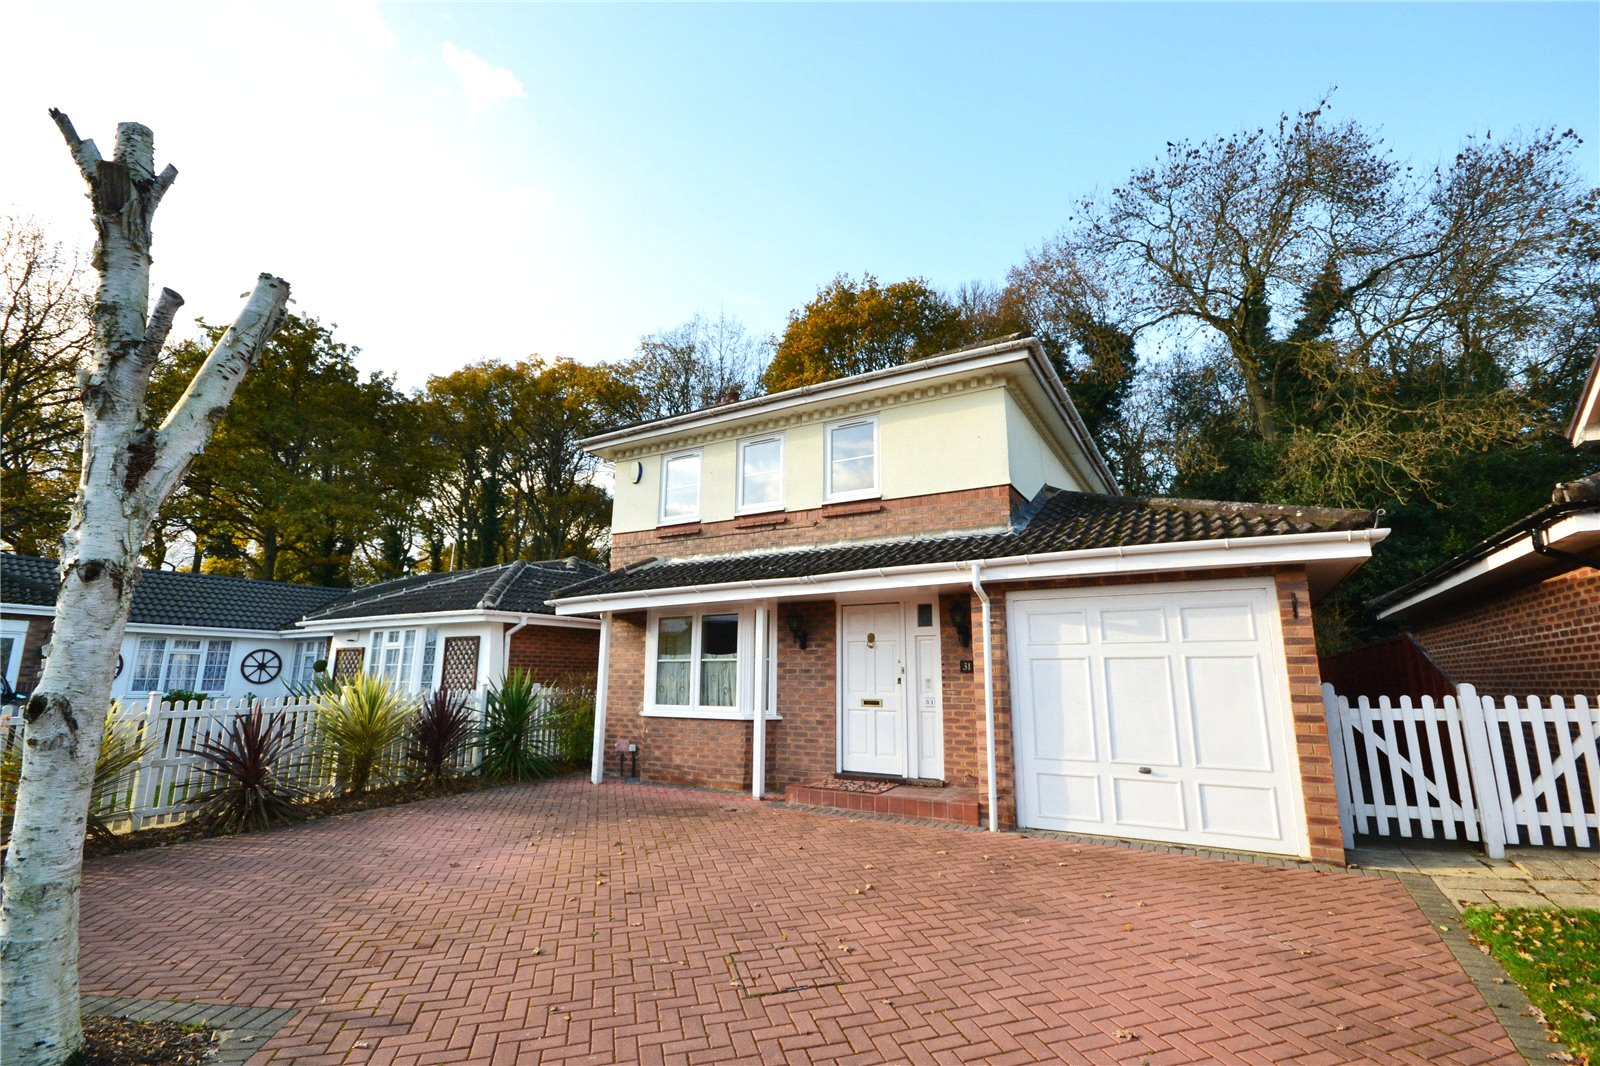 4 Bedrooms Detached House for sale in Hombrook Drive, Amen Corner, Binfield, Berkshire, RG42